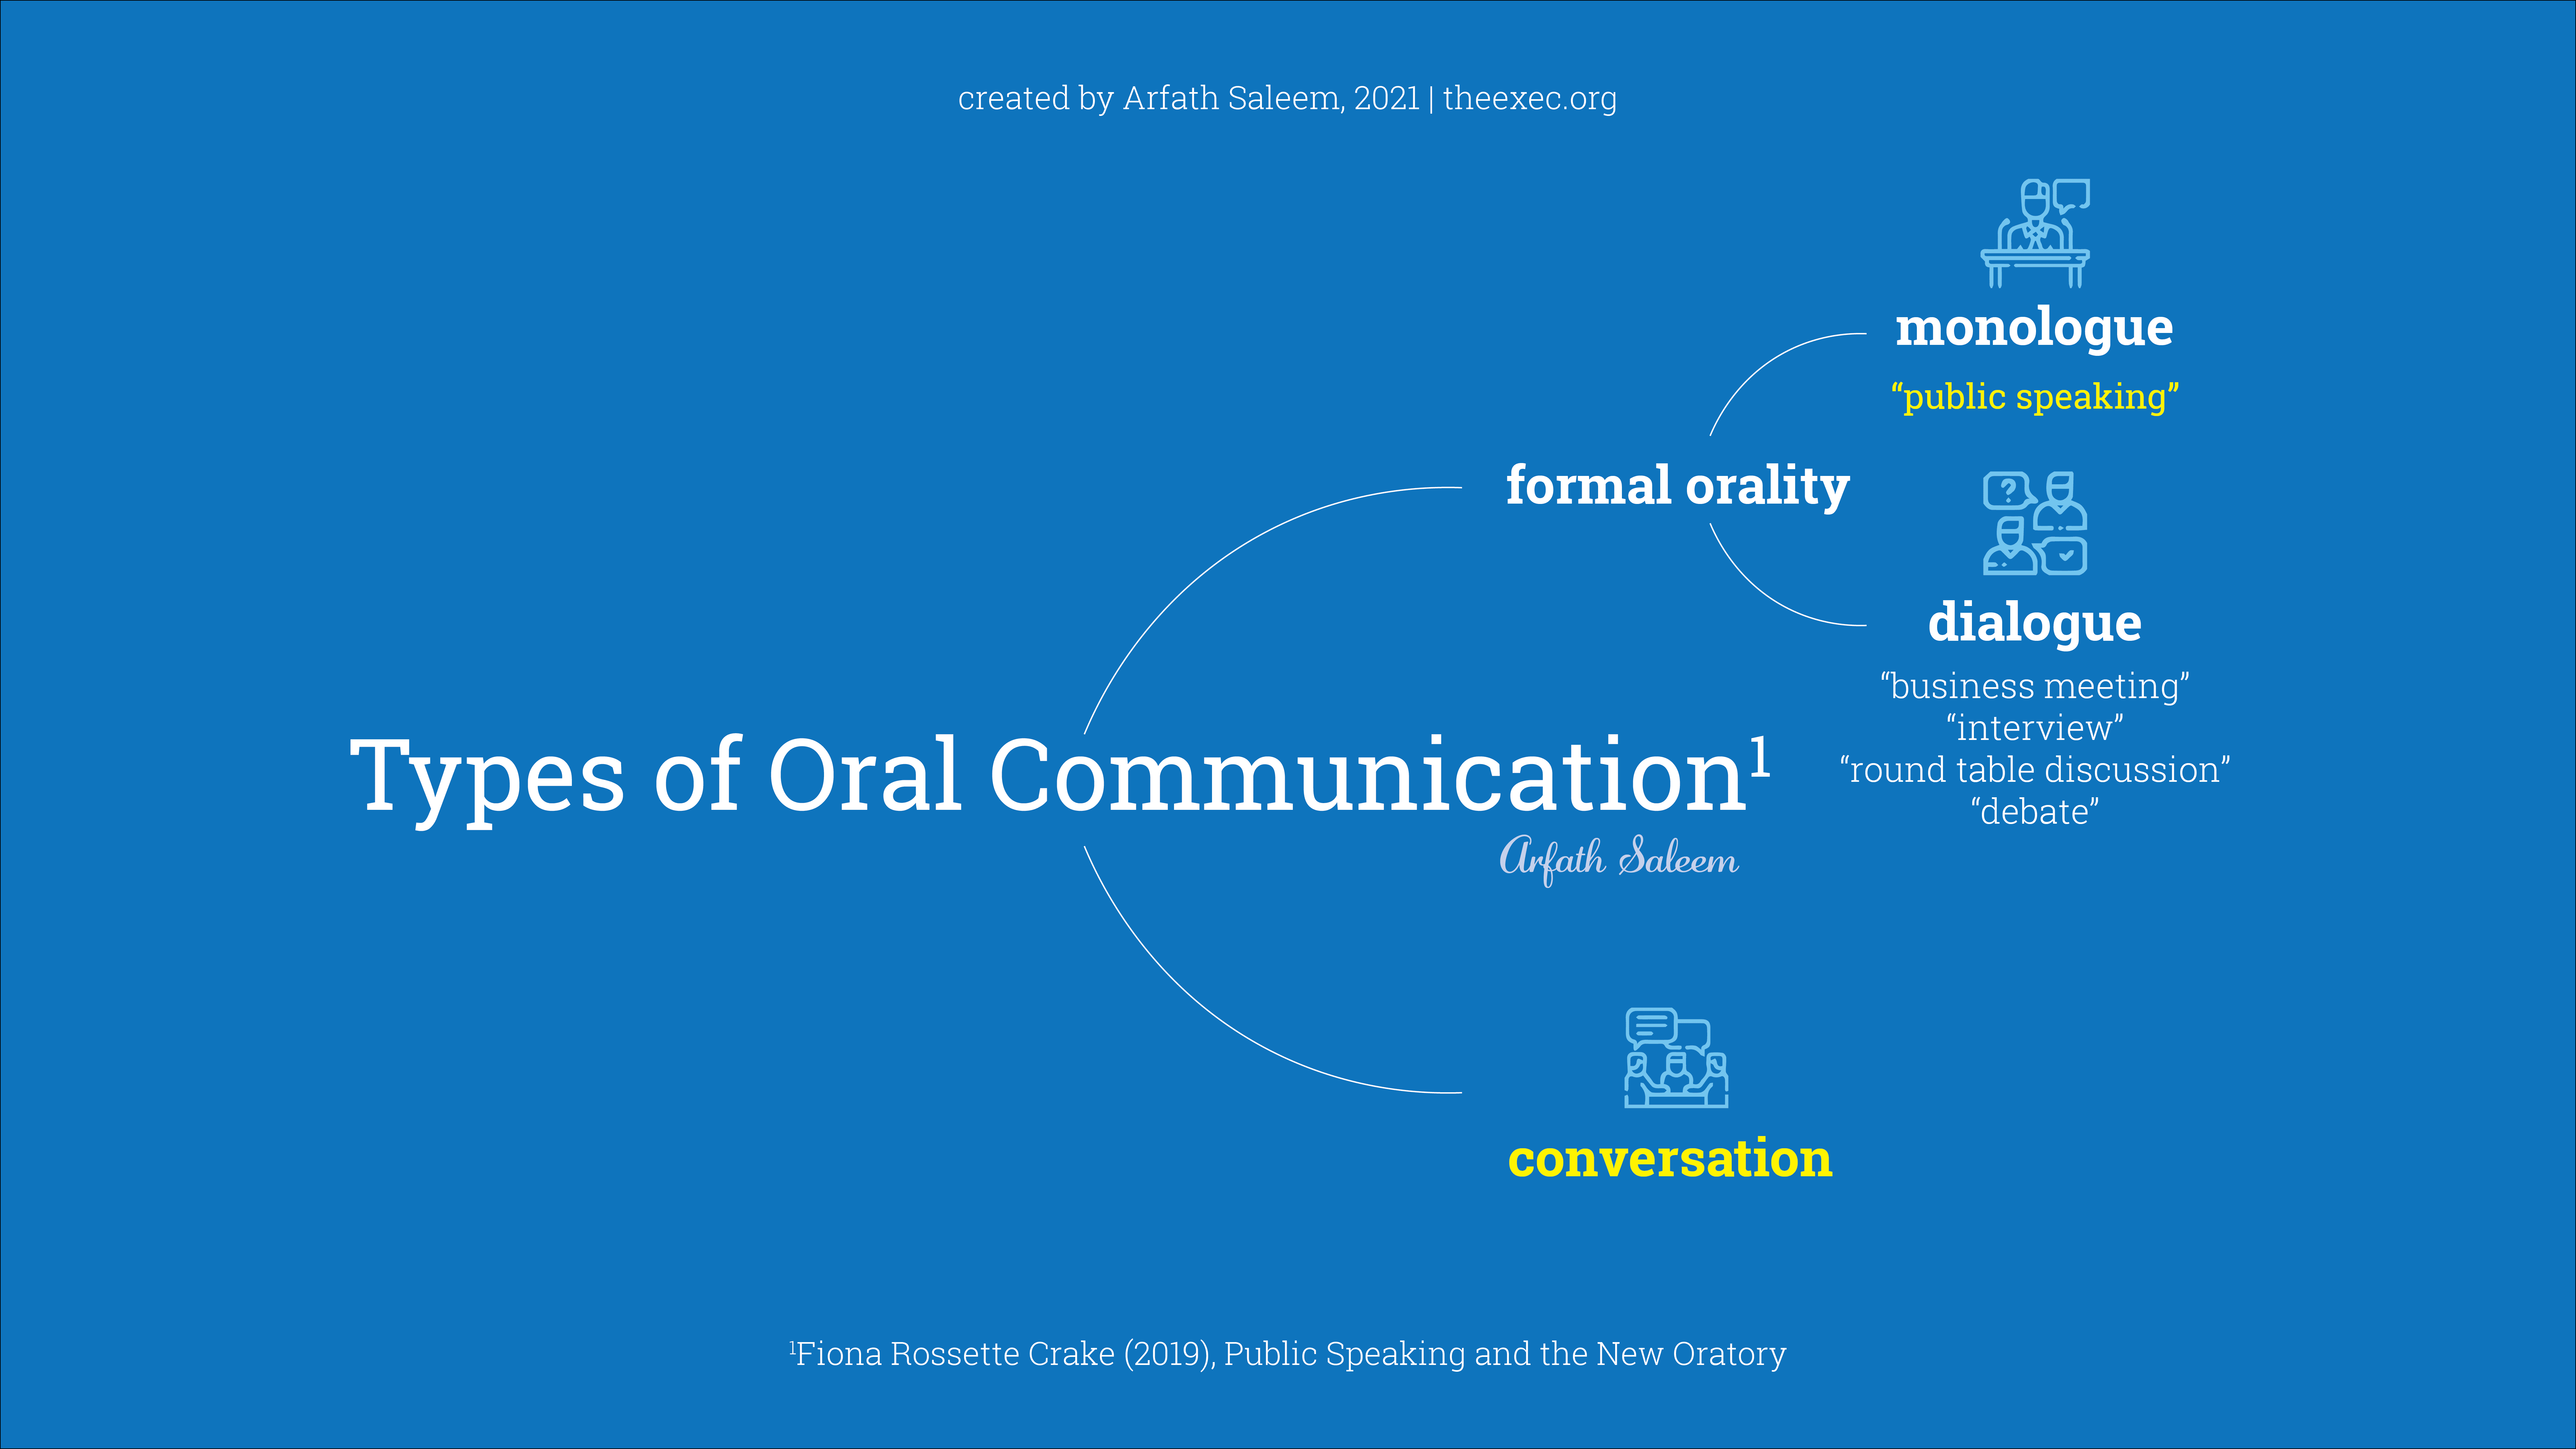 Types of Orality and the Difference between public speaking and conversation